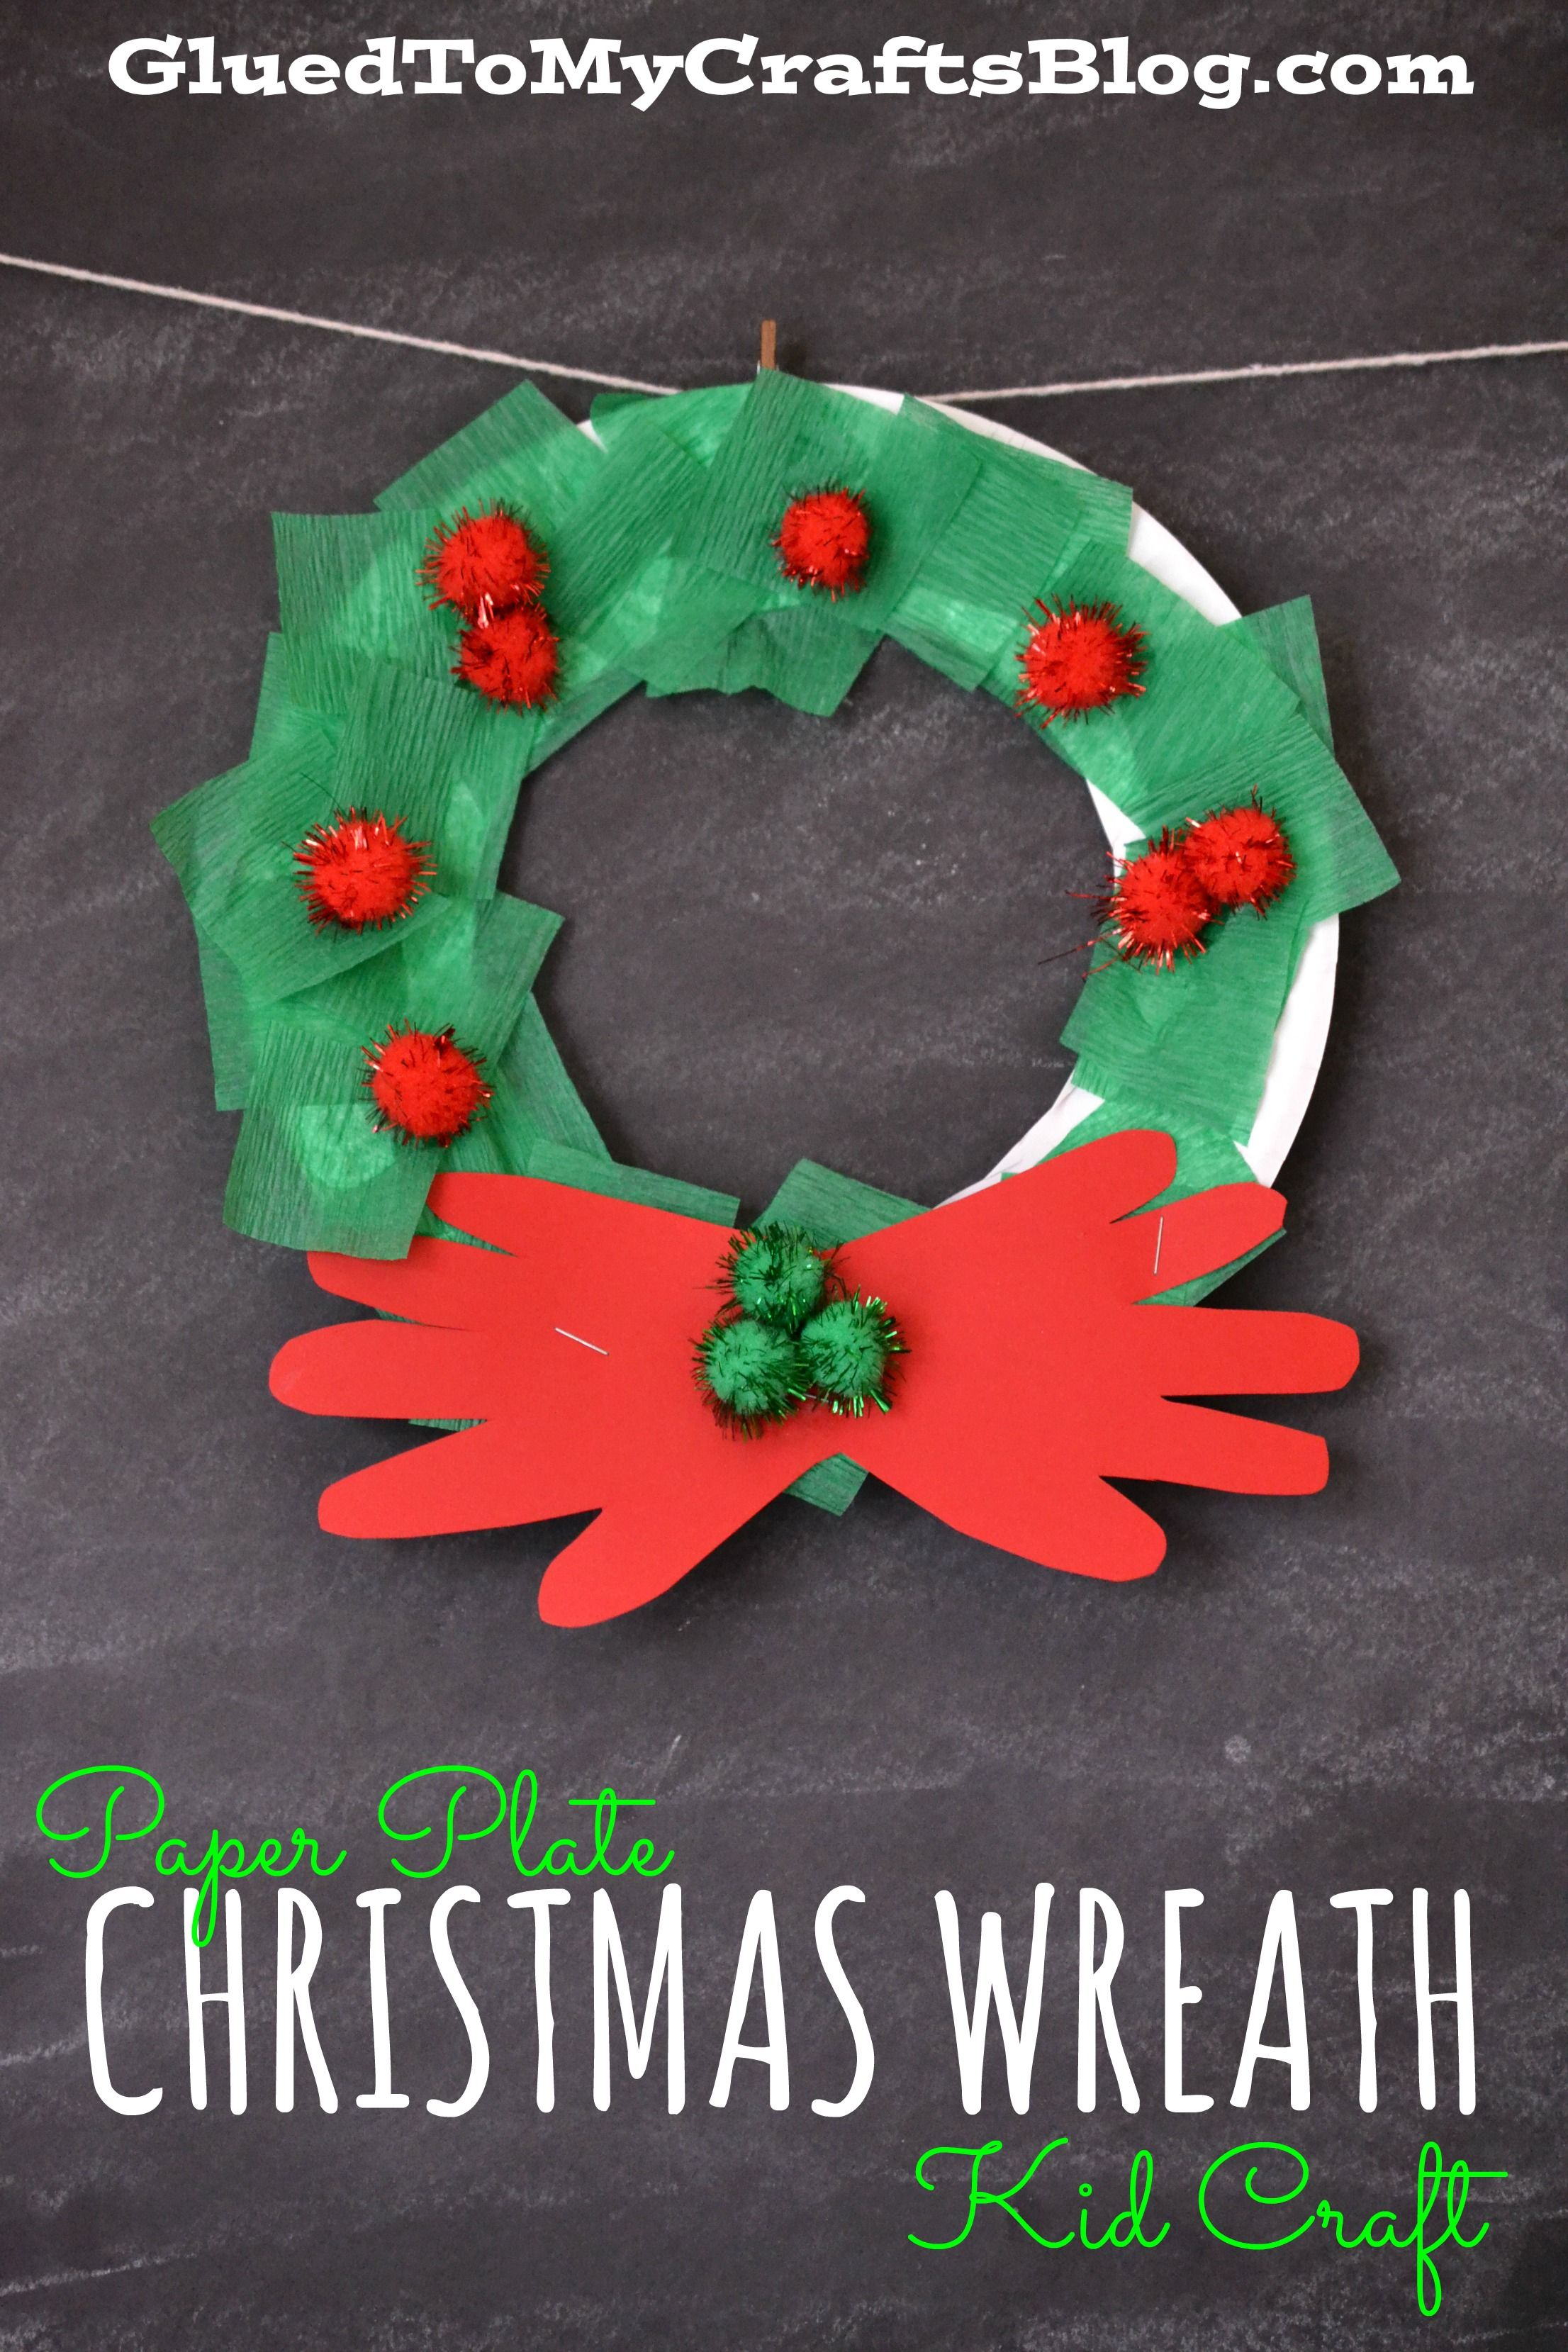 Paper Plate Christmas Wreath Kid Craft - the perfect kid friendly craft for the holiday seasoN! & Paper Plate Christmas Wreath Kid Craft | Wreaths Holidays and Craft